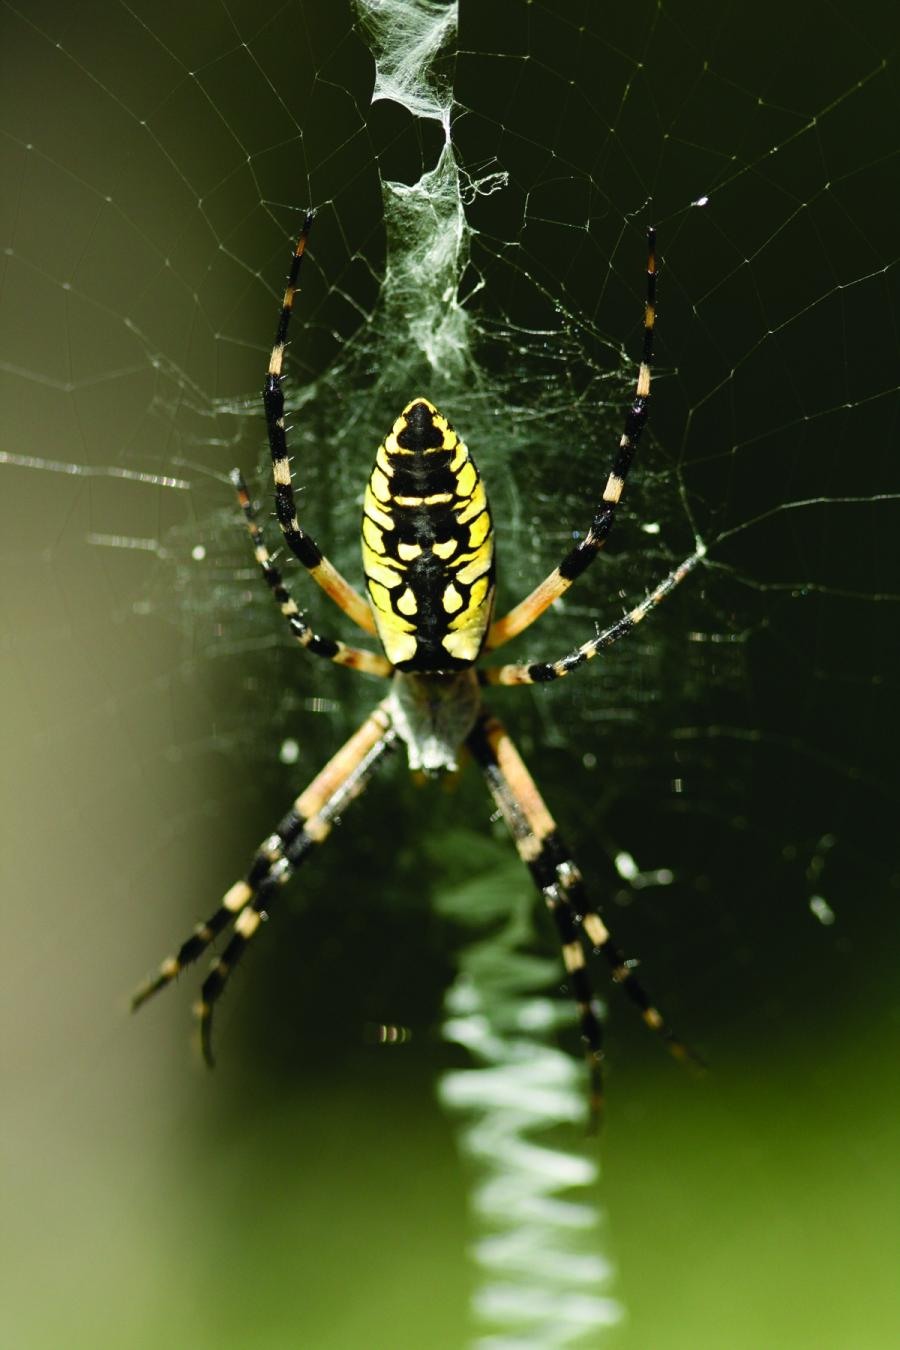 how to get rid of spiders in your garden